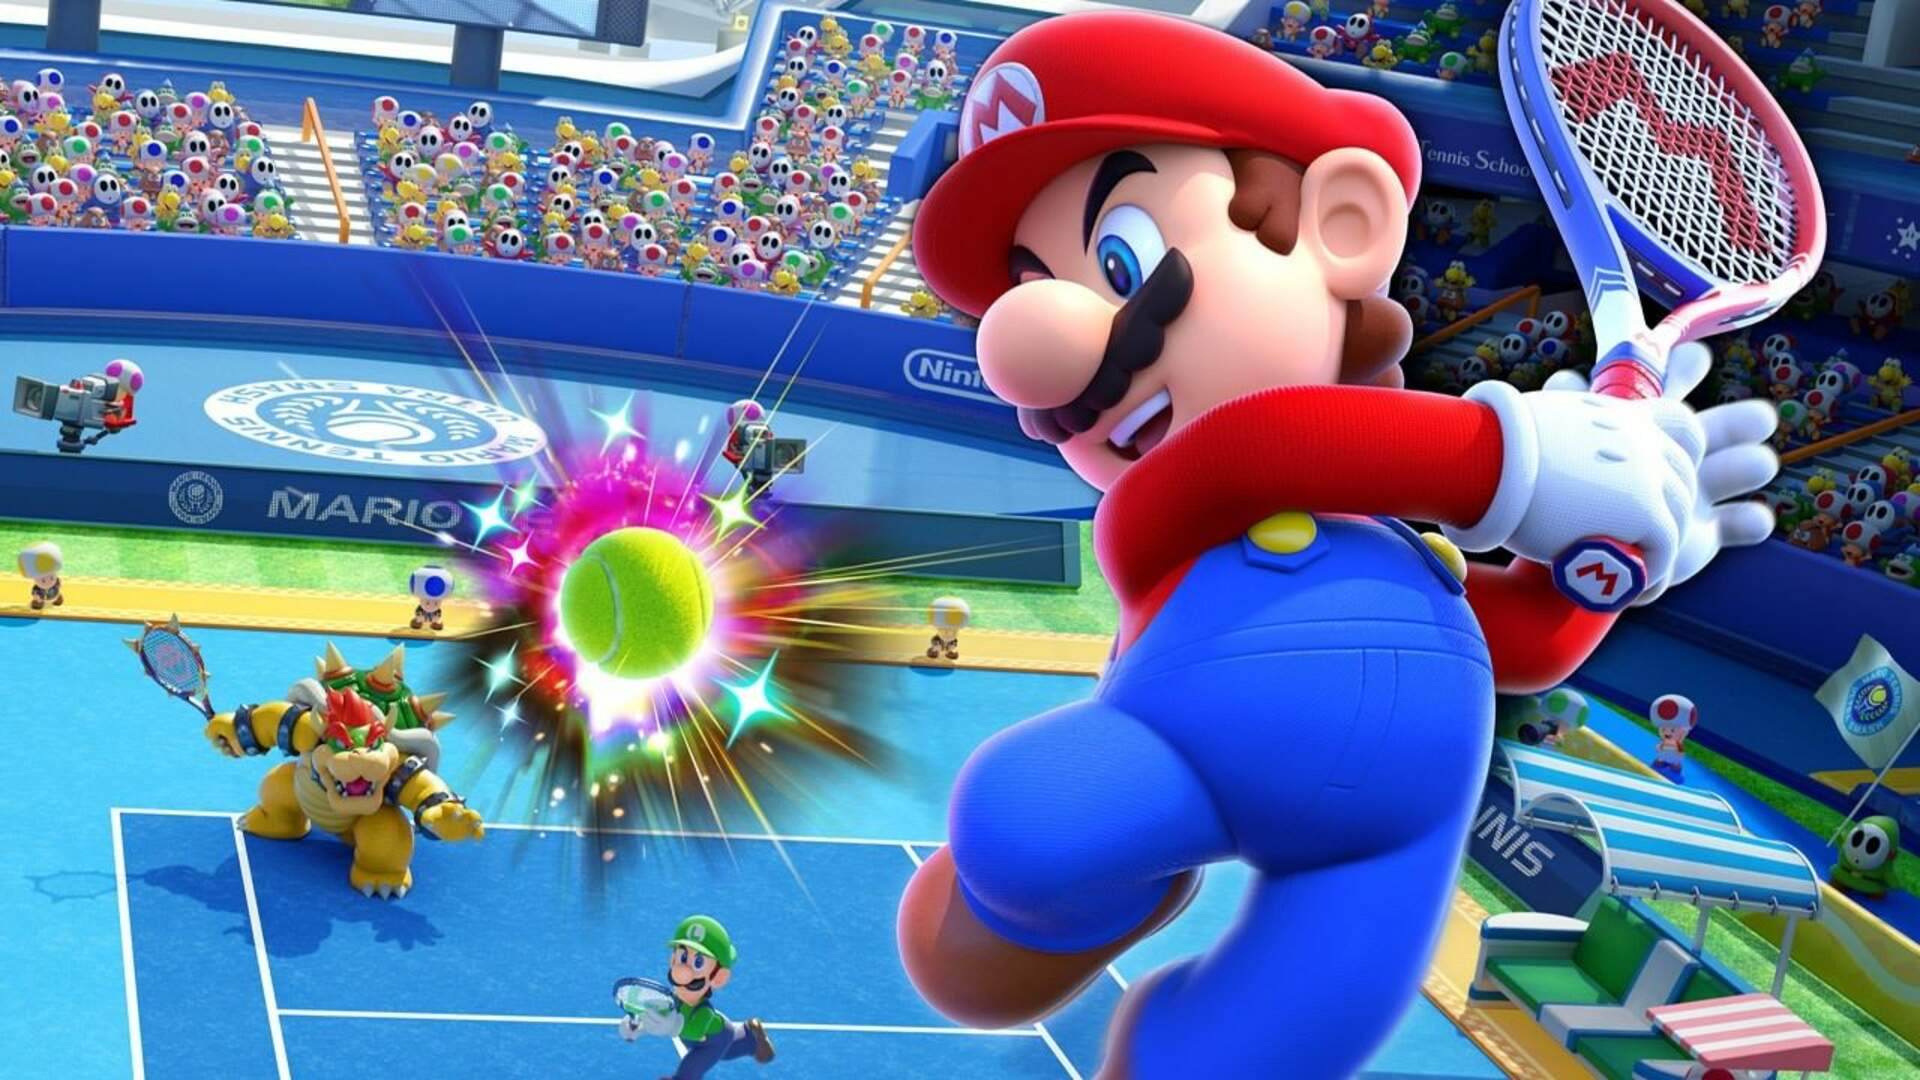 Here's How to Play Mario Tennis Aces for Free on Nintendo Switch